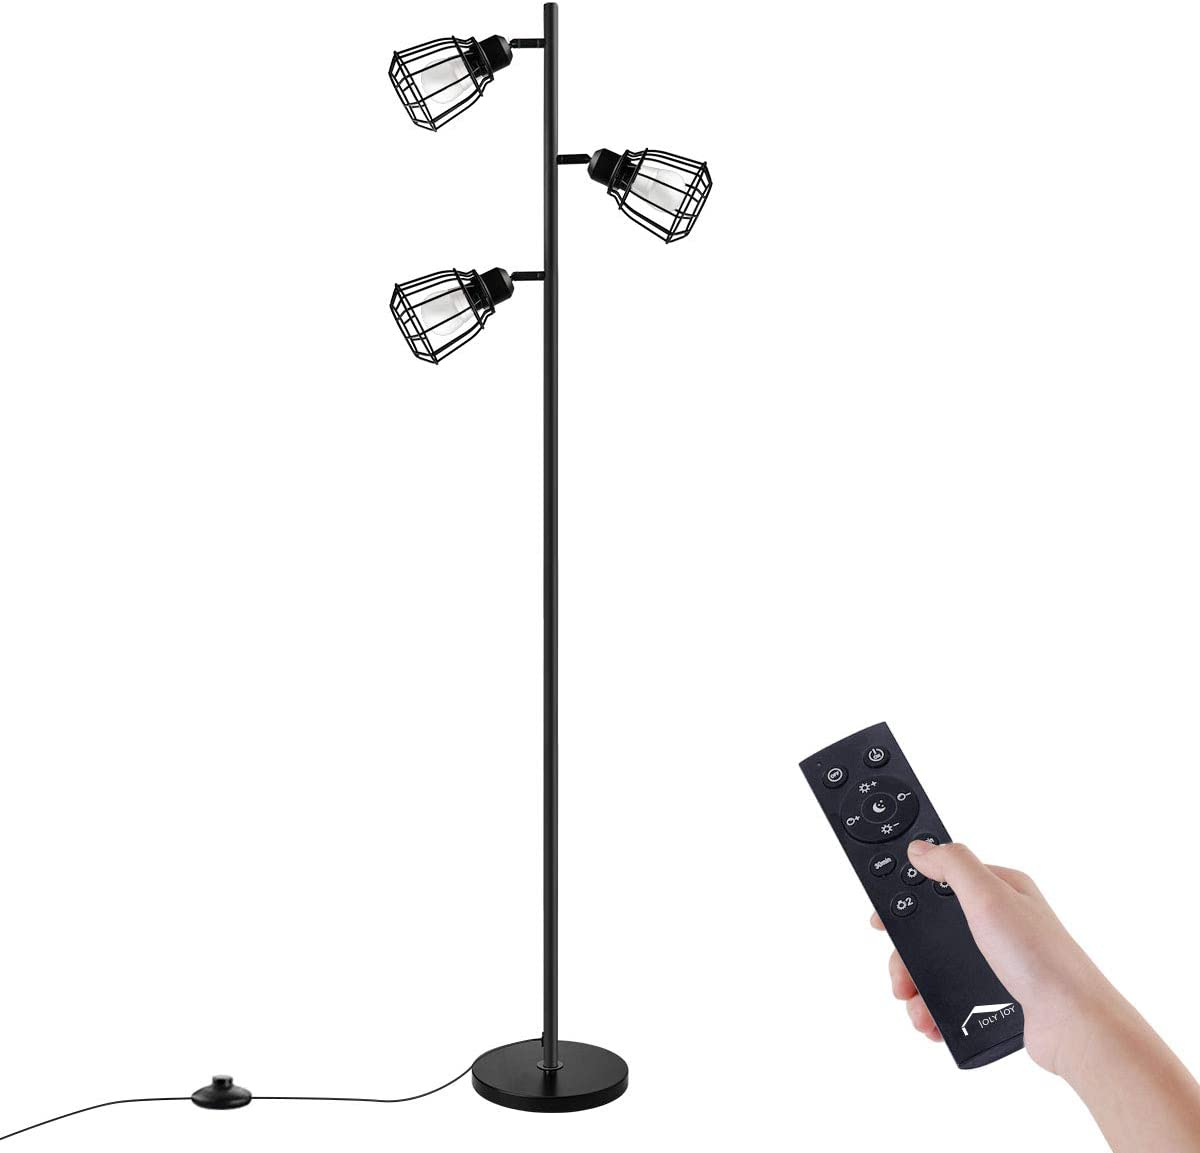 Houston Mall Joly Joy Arc Floor Lamps Super Metal Bright Los Angeles Mall Torchiere 3-Lig LED